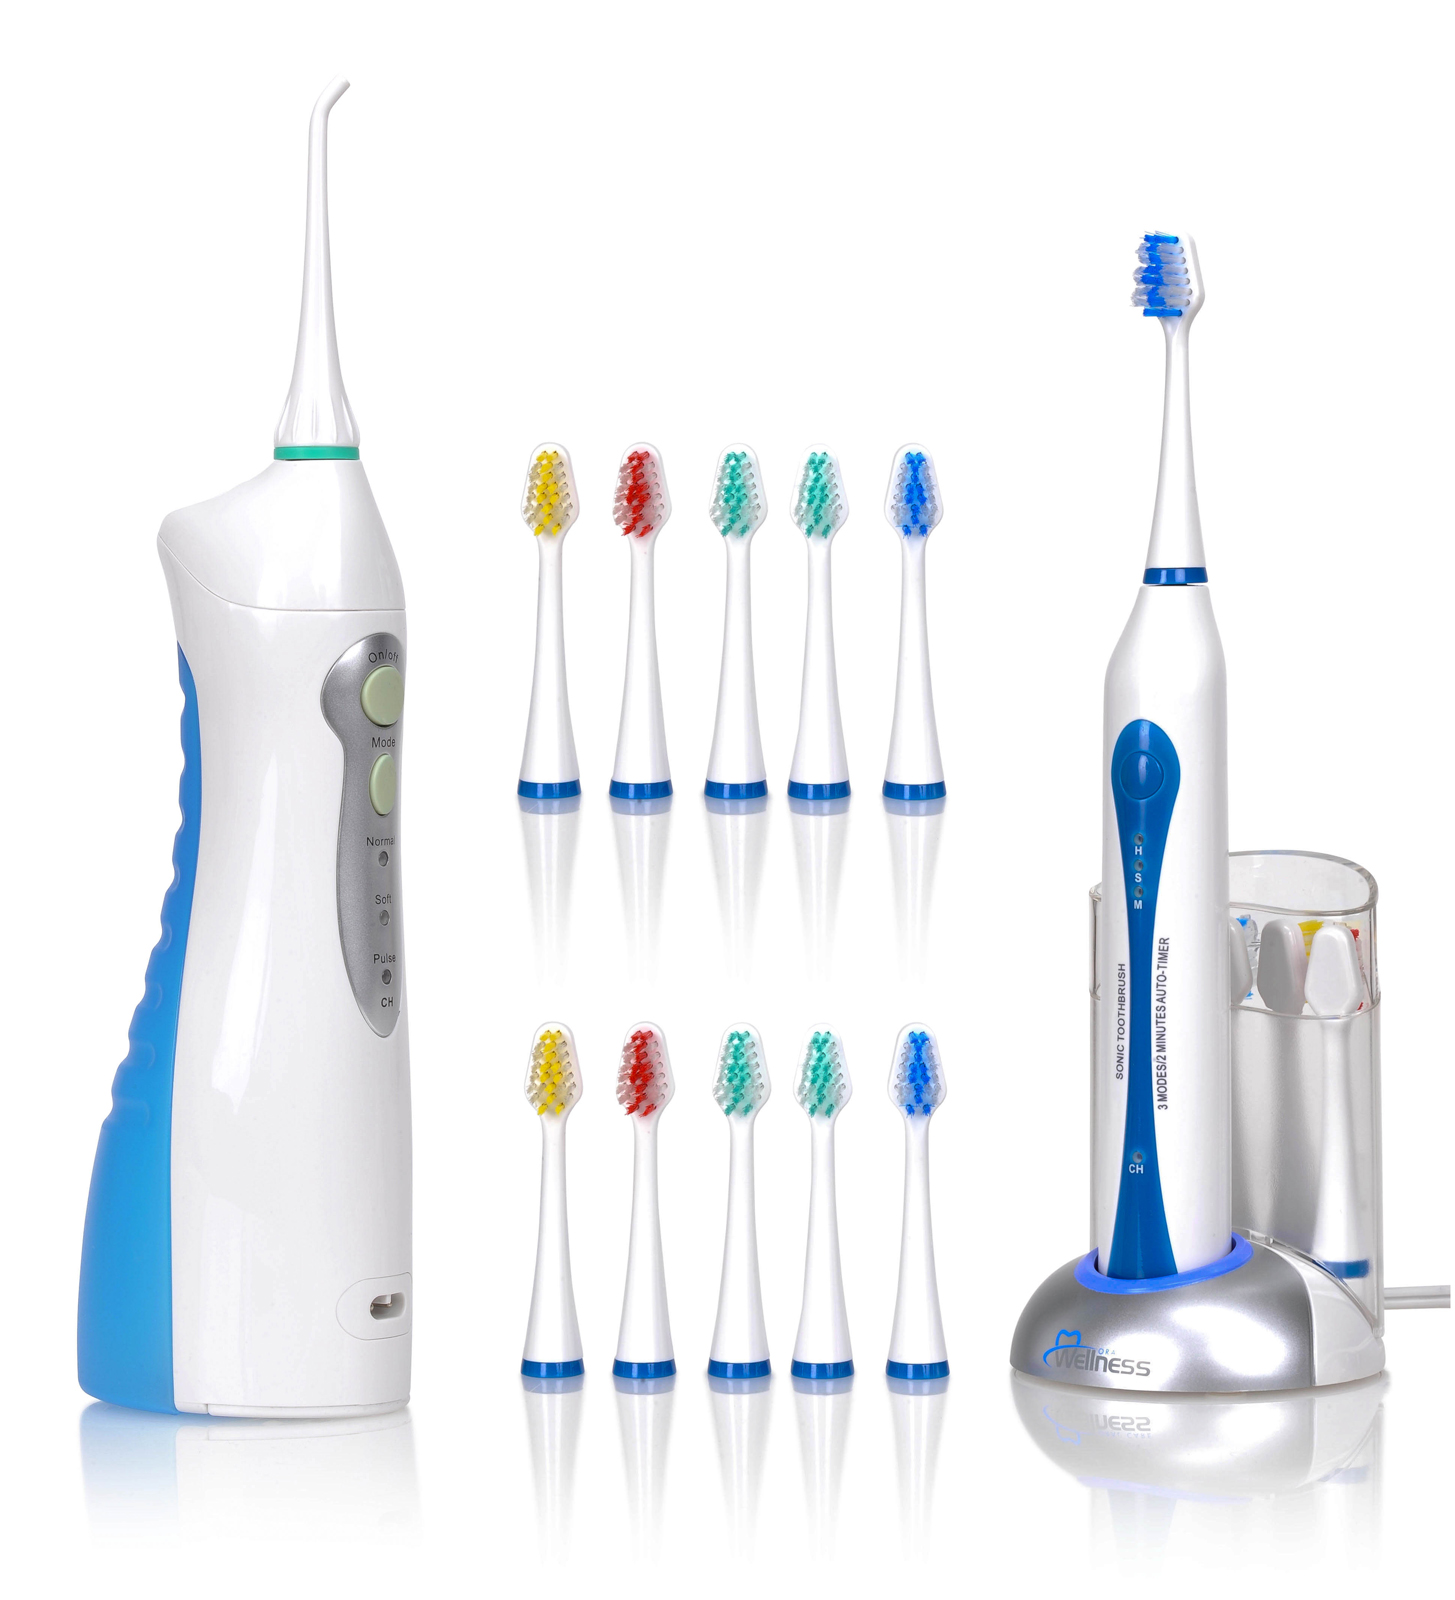 Wellness Oral Care Ultra High Powered Rechargeable Sonic Electric Toothbrush with 20 Heads and Water Flosser Kit